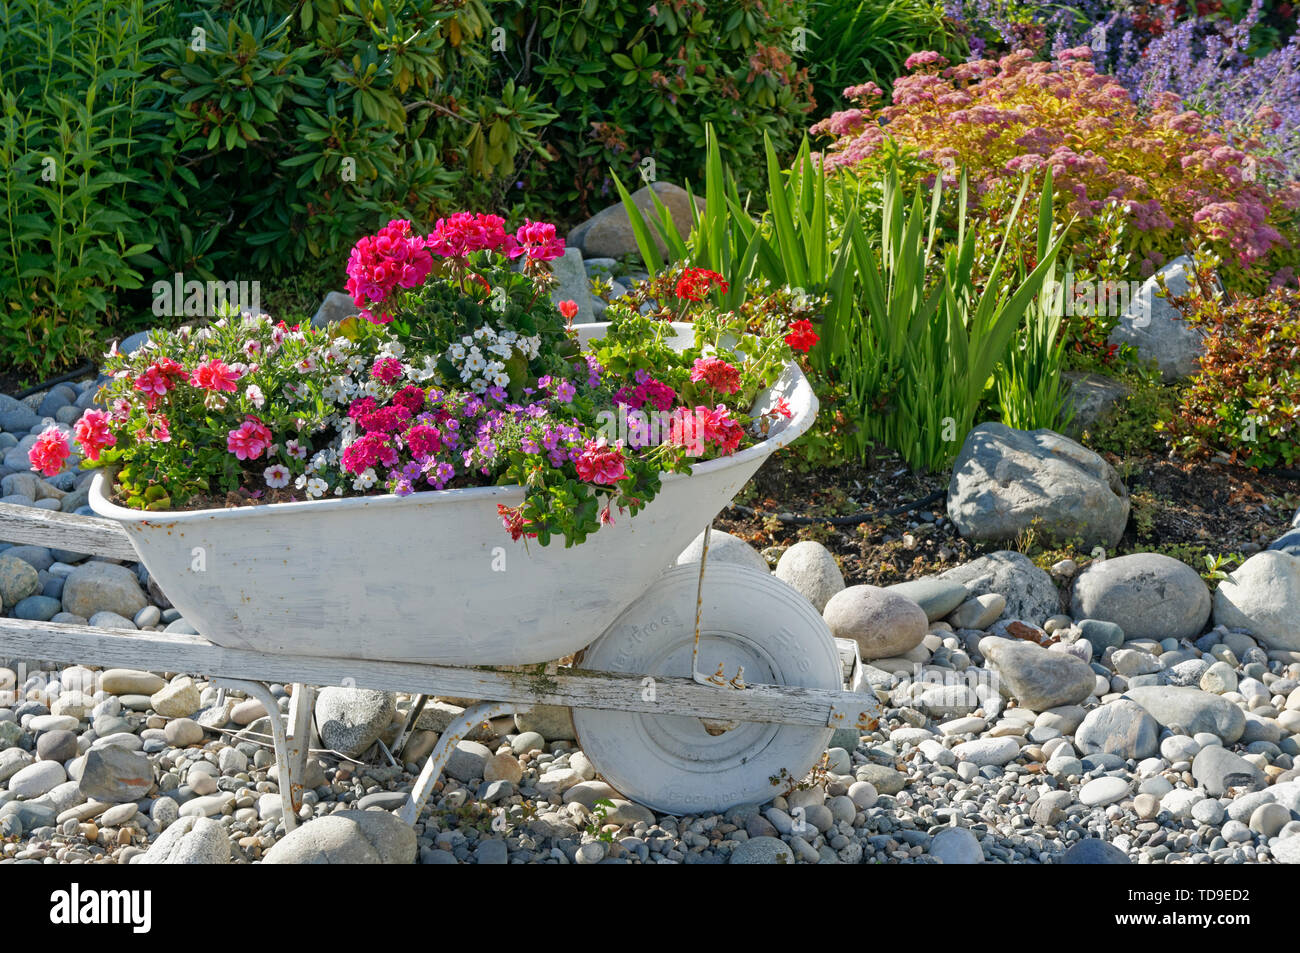 Old wheelbarrow painted white and being used as a flower planter in a rock garden - Stock Image